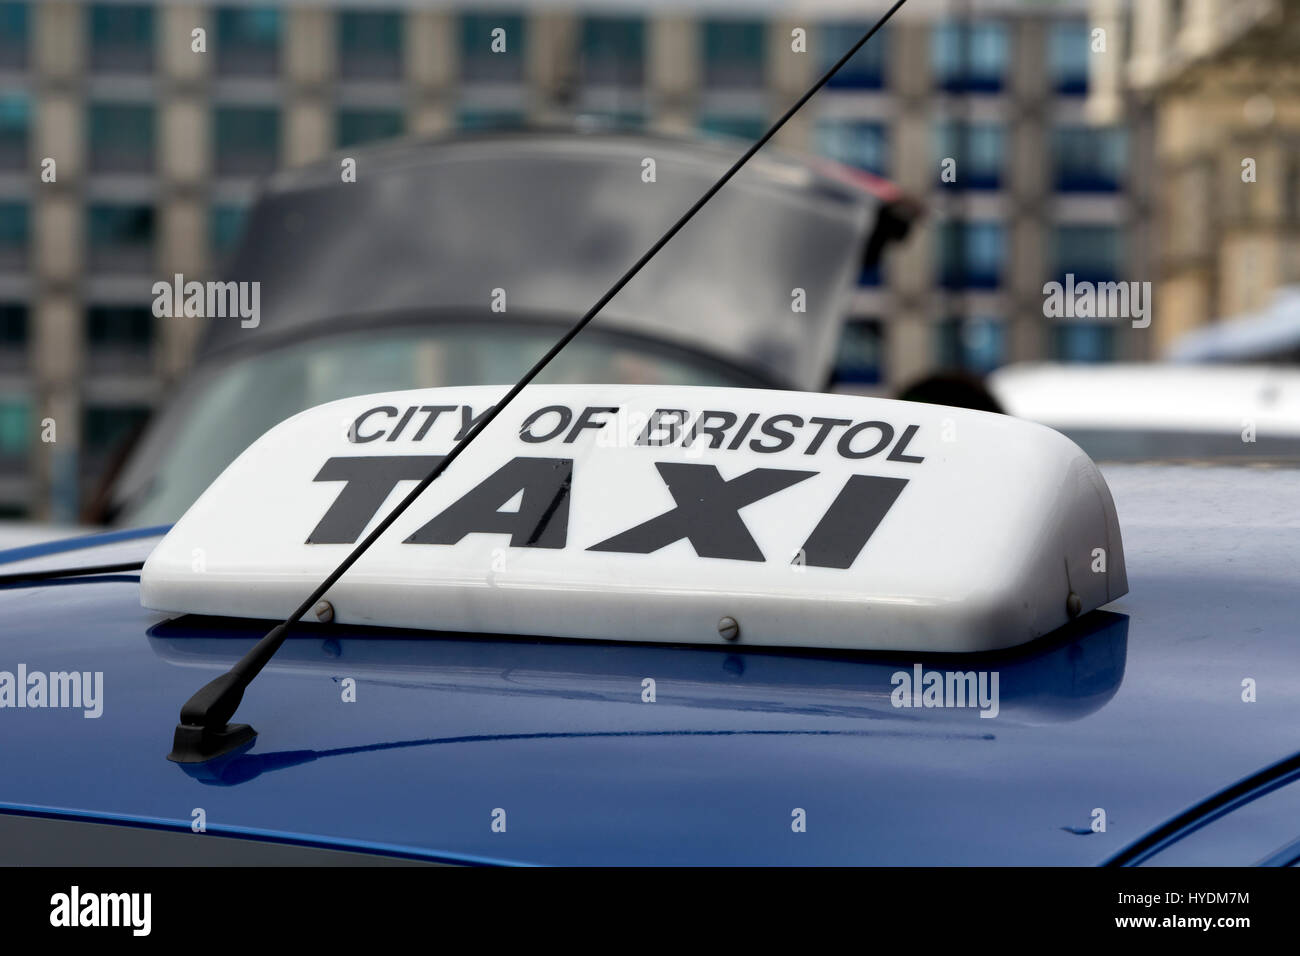 Sign on the roof of a City of Bristol taxi, Bristol, UK - Stock Image